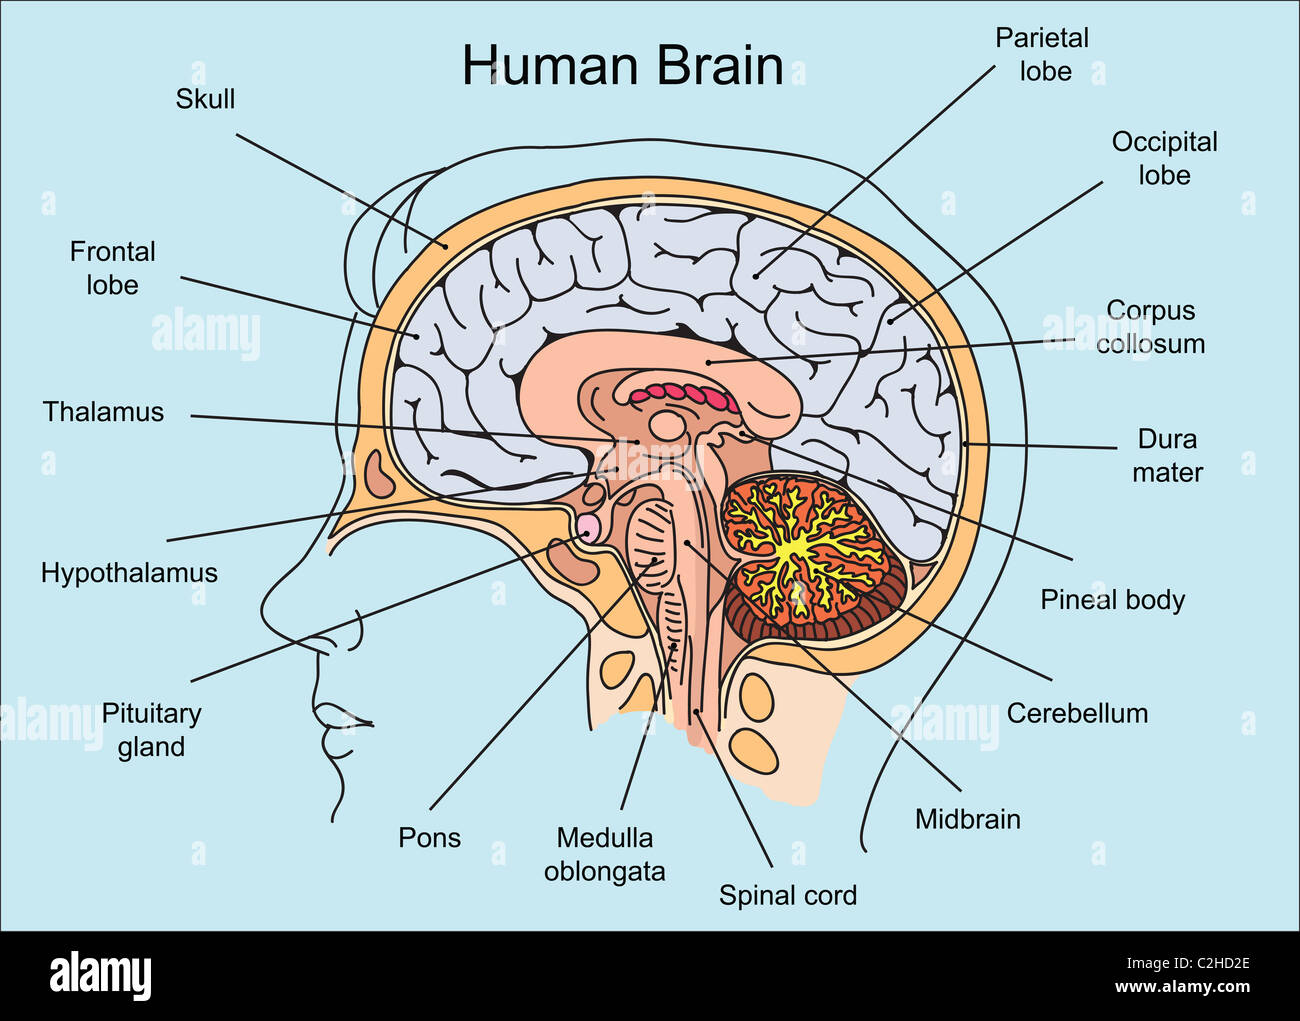 structure and functions of the brain worksheet Brain structure functions worksheet directions: go to real anatomy and select nervous you can use the related images section to find images of the skull if you need help navigating real anatomy, click on take a tour or click the question mark for the help menu.